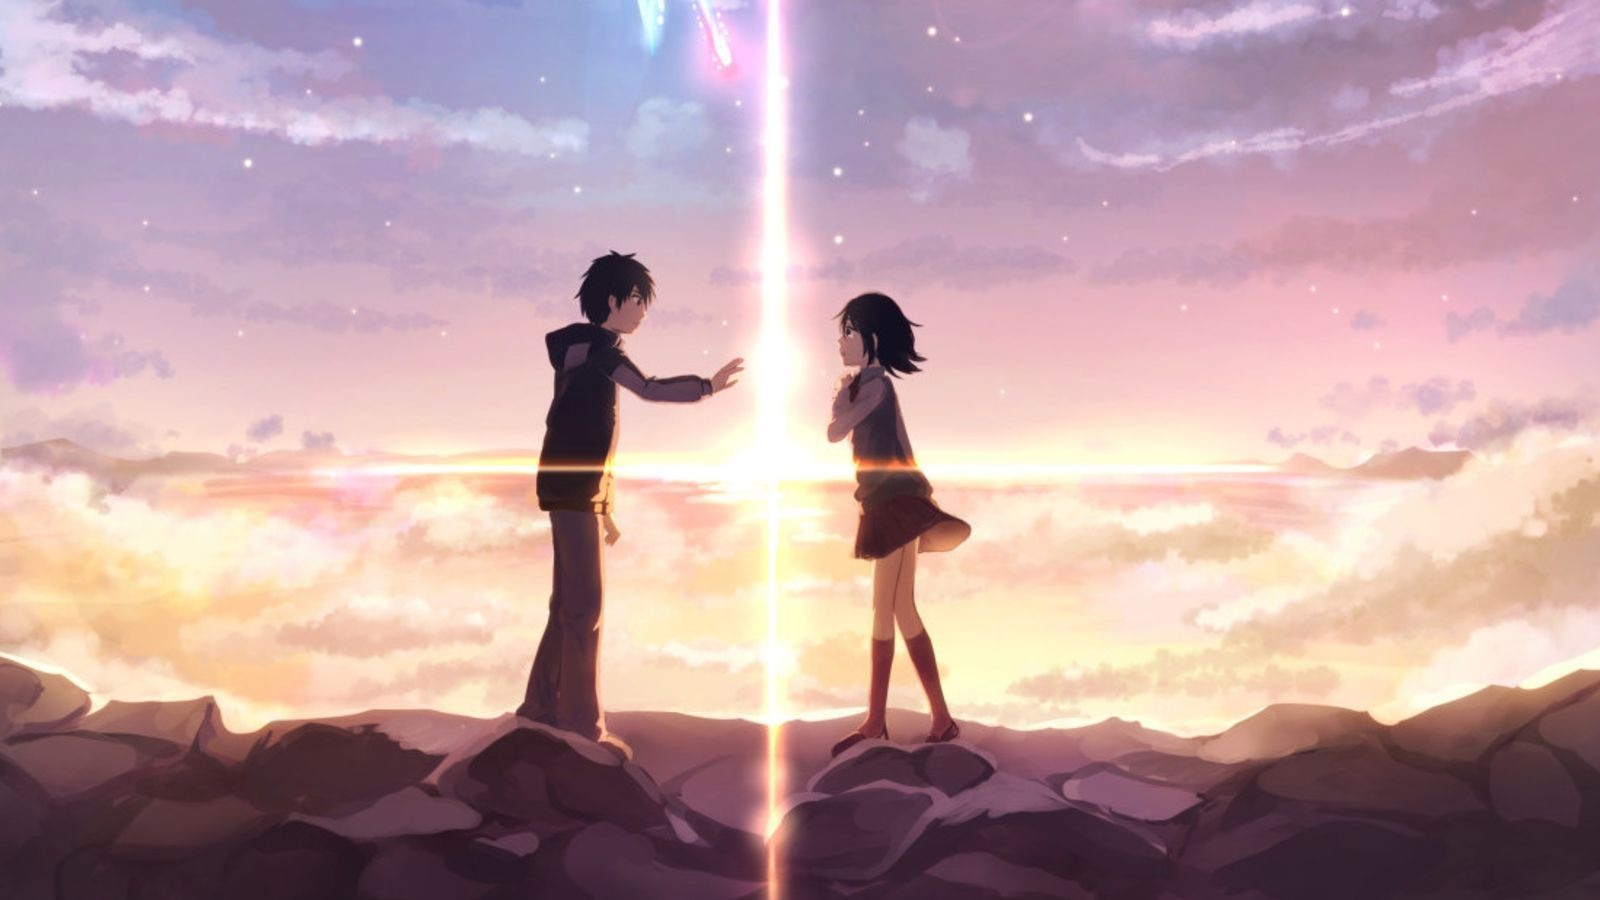 Mitsuha and Taki finally meet and touch hands at the twilight hour in Your Name